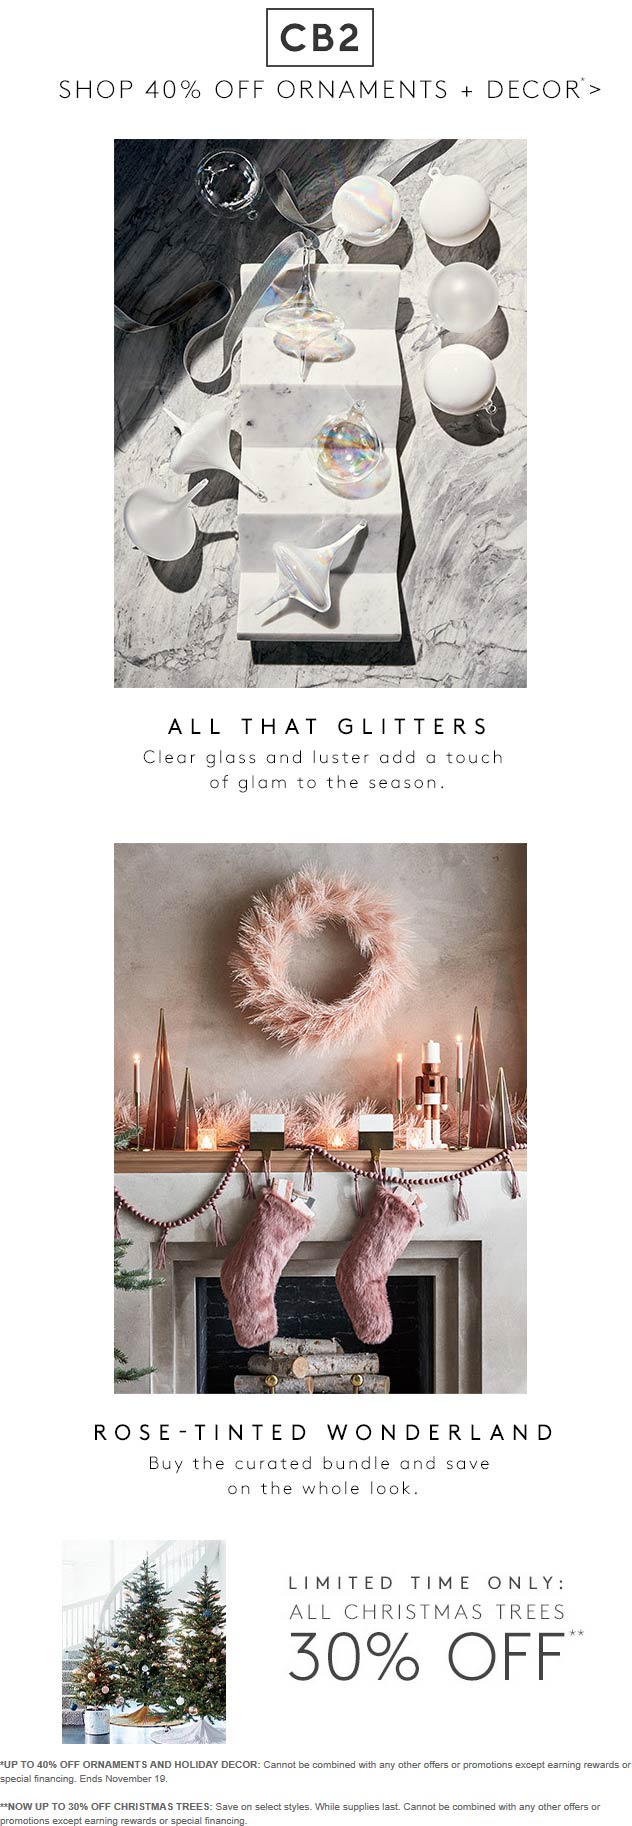 CB2 Coupon December 2019 30% off xmas trees & 40% off ornaments at Crate & Barrel CB2, ditto online